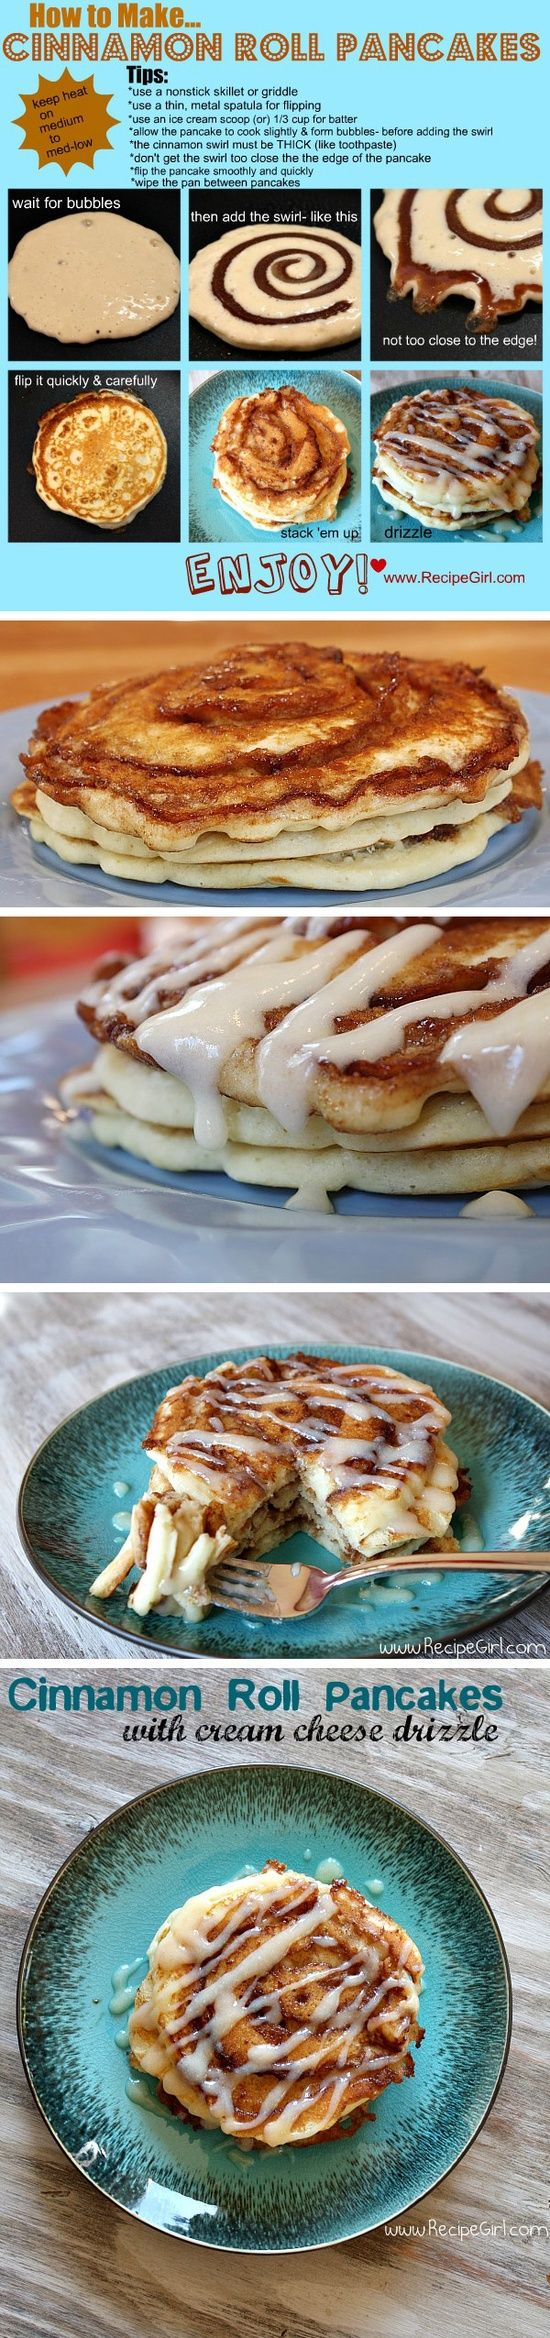 Cinnamon Roll Pancakes. kids would love this!